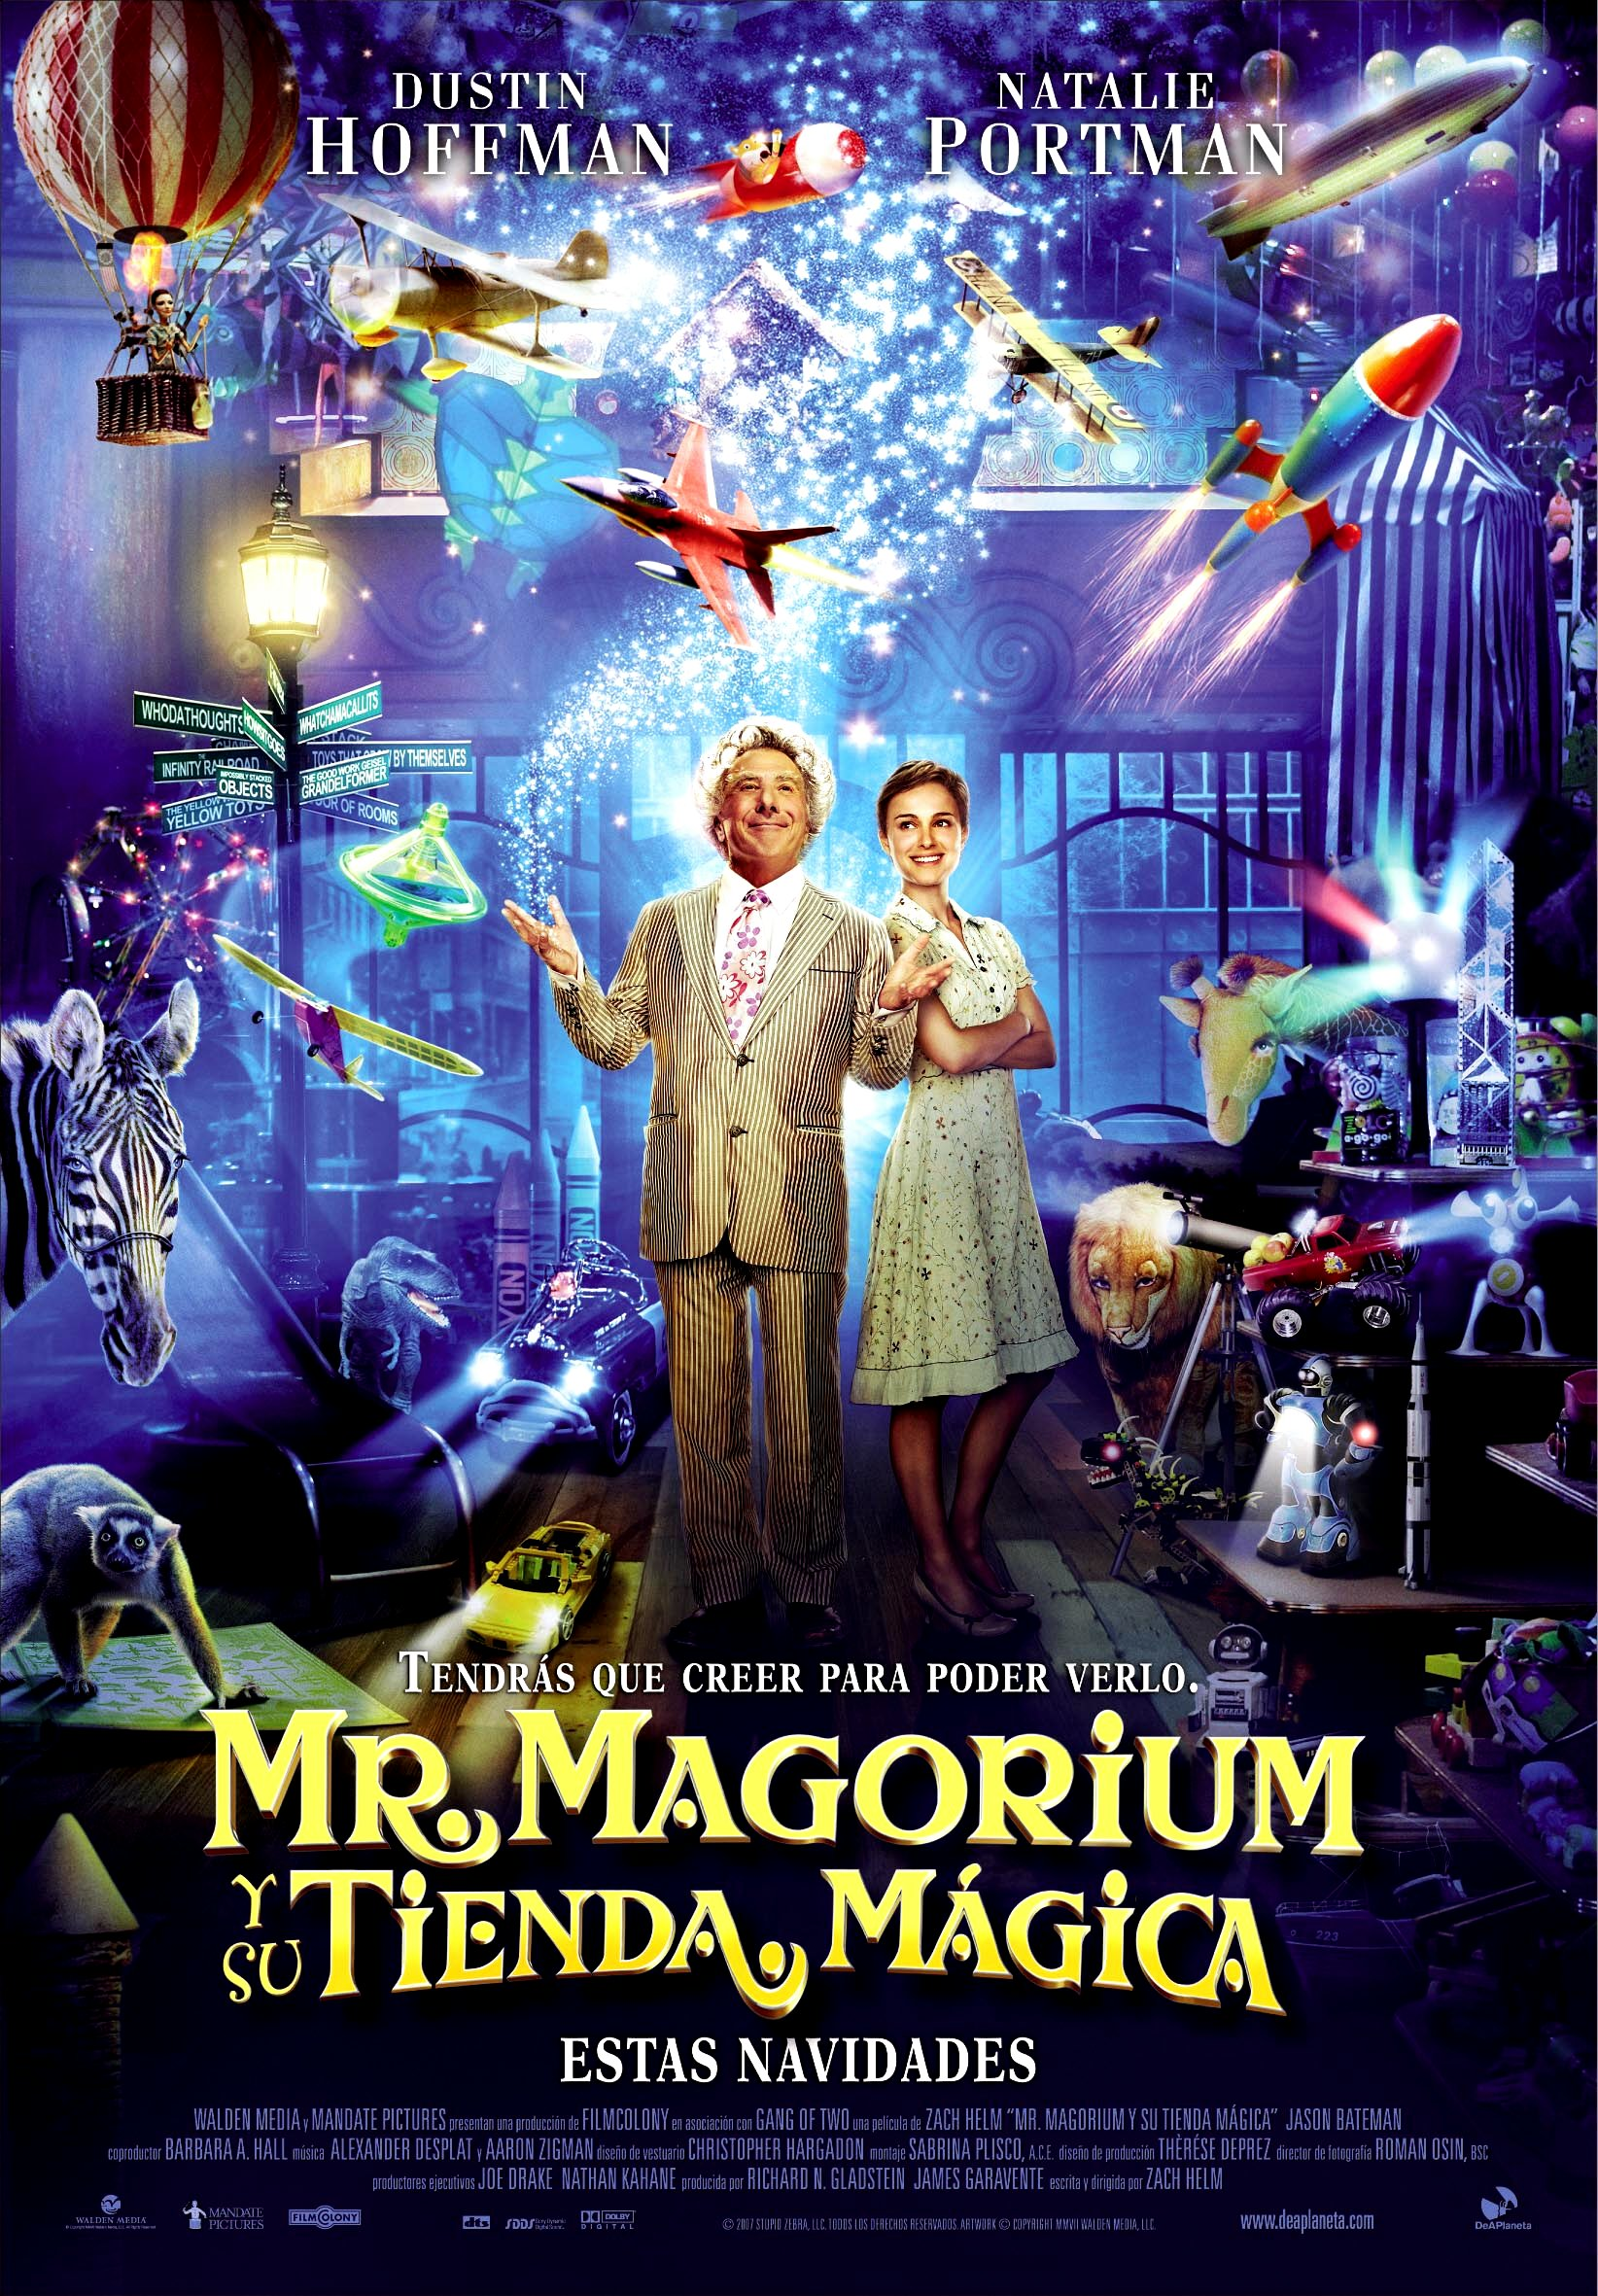 Mr Magorium's Magical Emporium